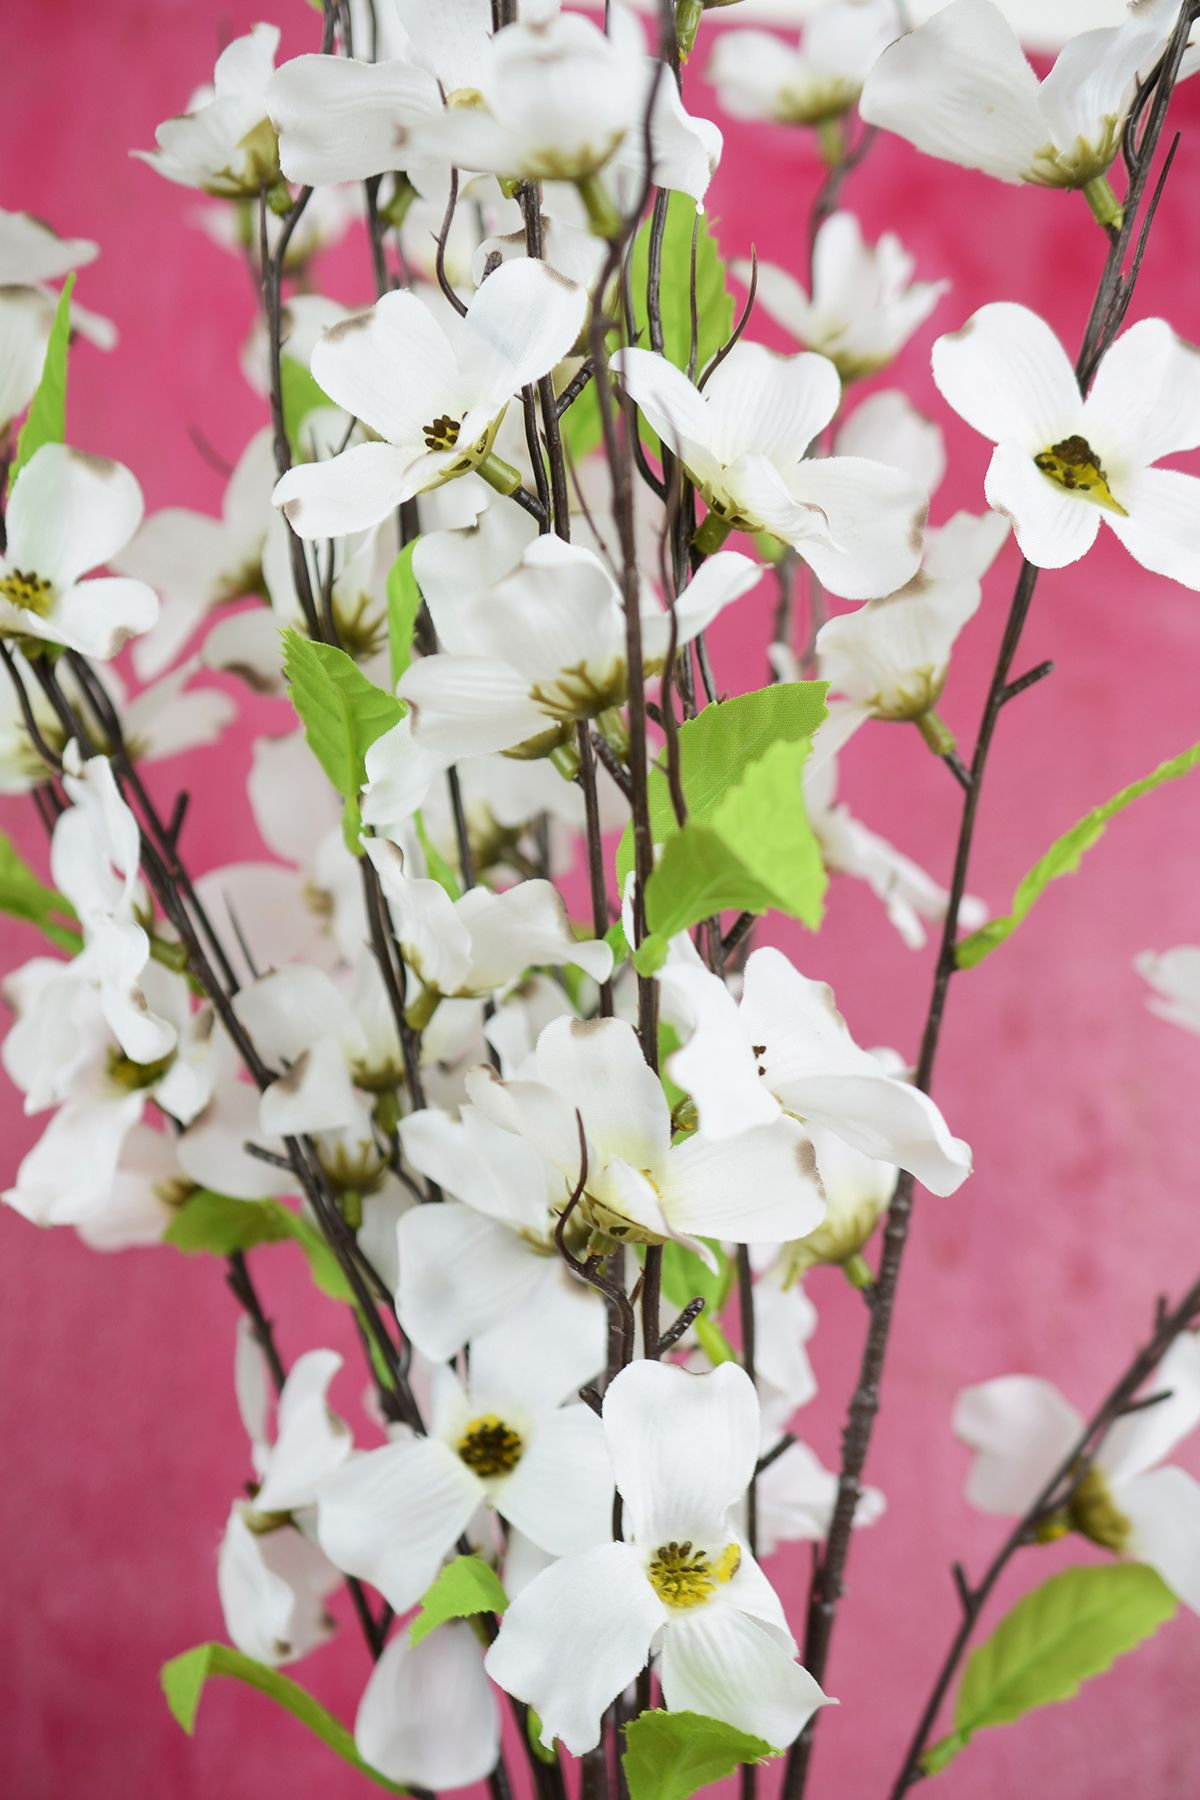 Dogwood branches diy and useful idea tips pinterest dogwood branches mightylinksfo